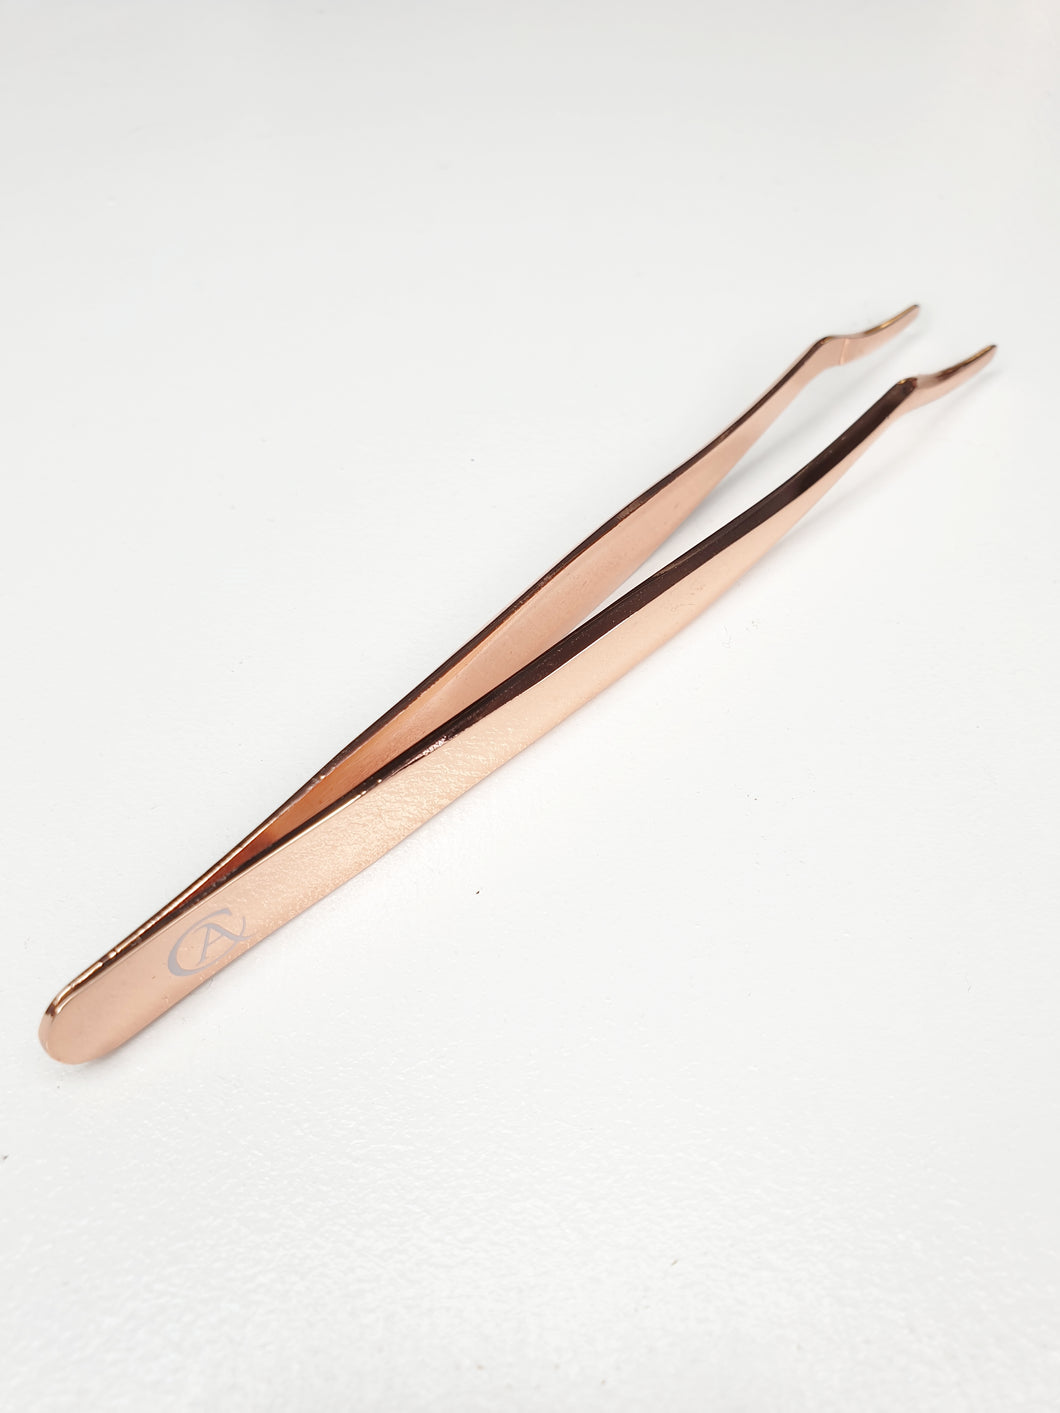 Lash Aplicator/Tweezers (Rose Gold) aplicator